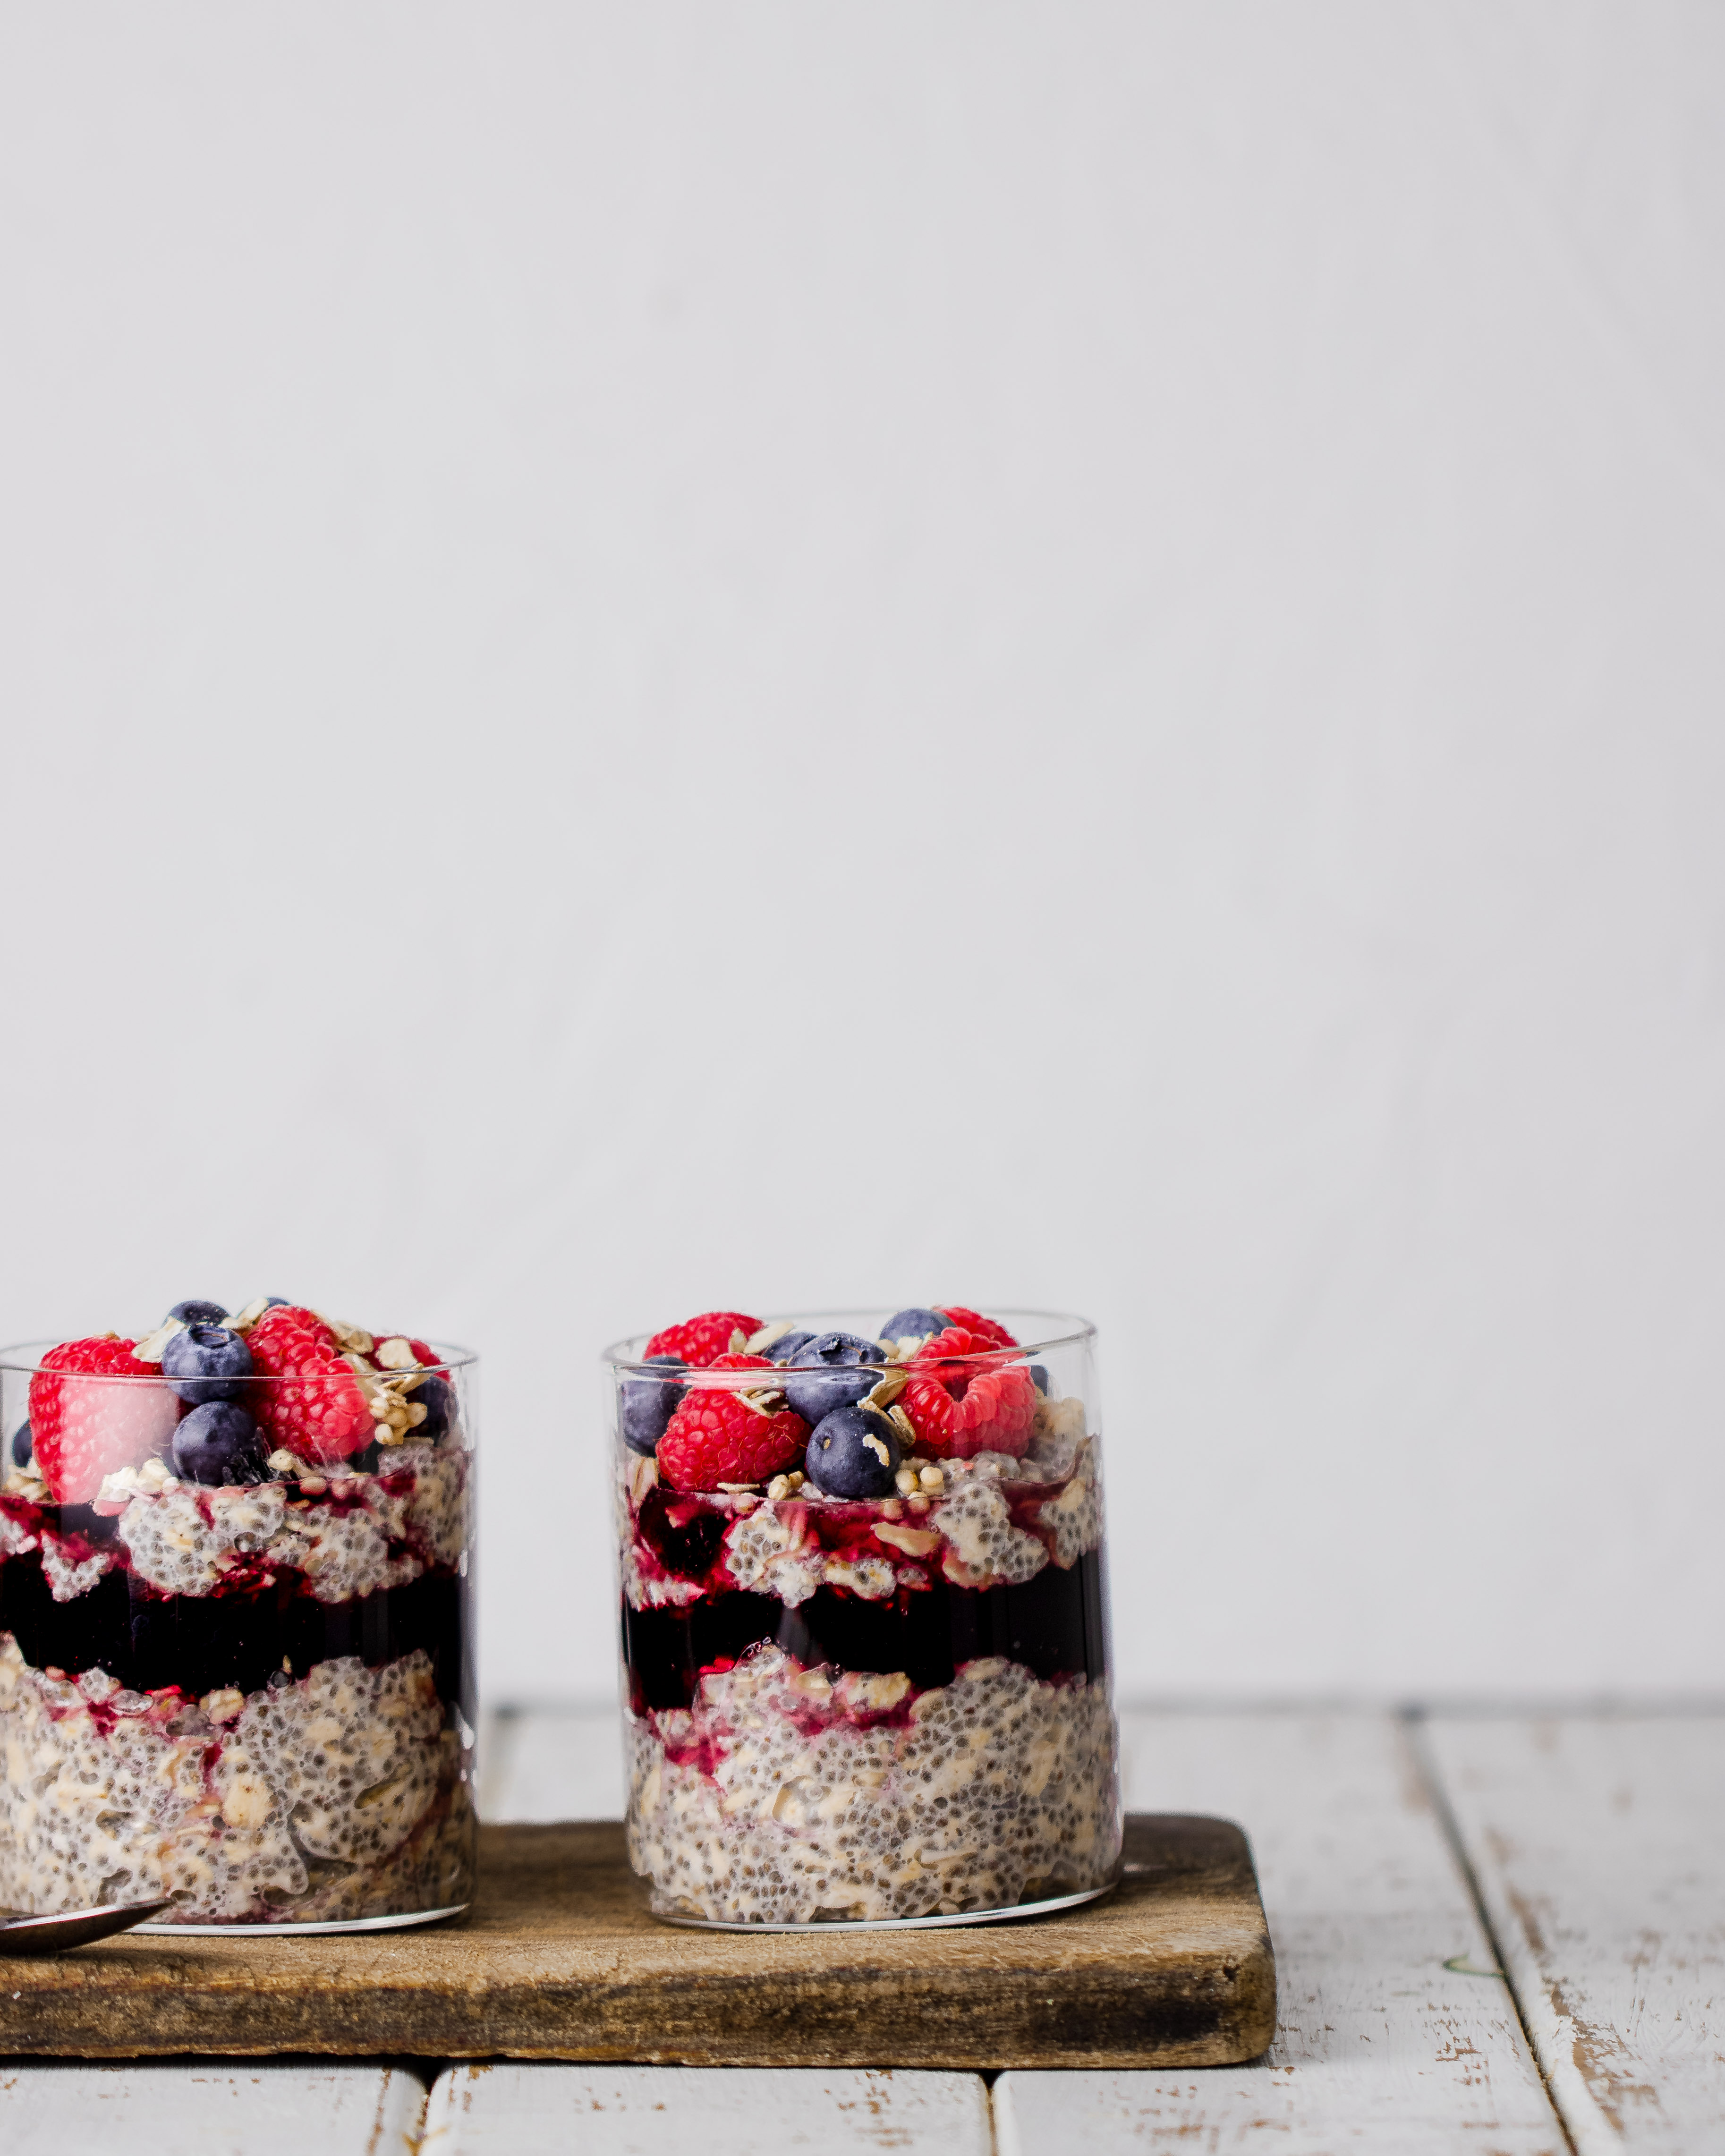 coconut overnight oats with fresh berries